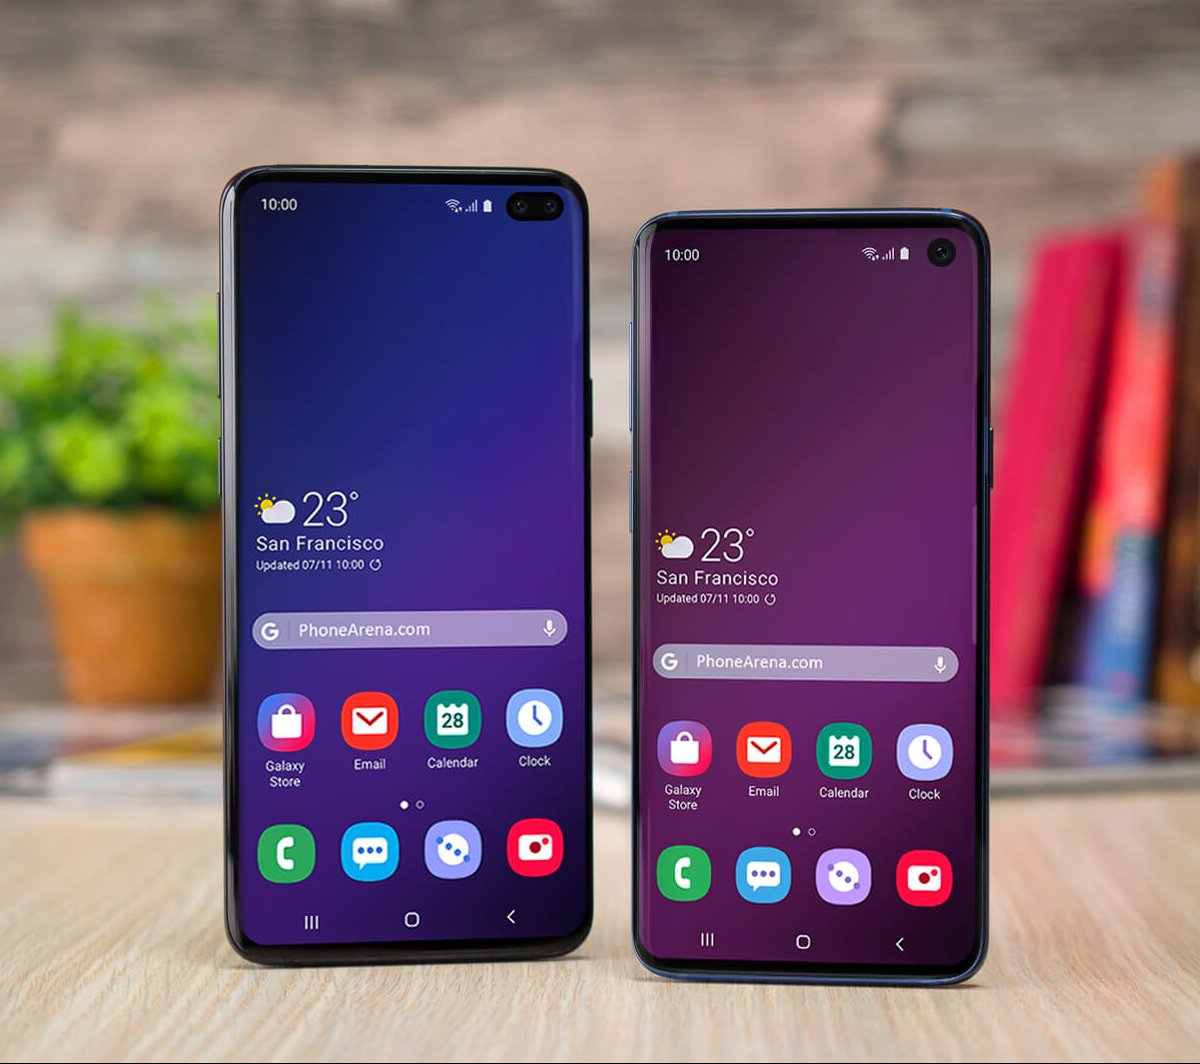 Galaxy s10 s10 and s10e release date price news and leaks e1549989913800